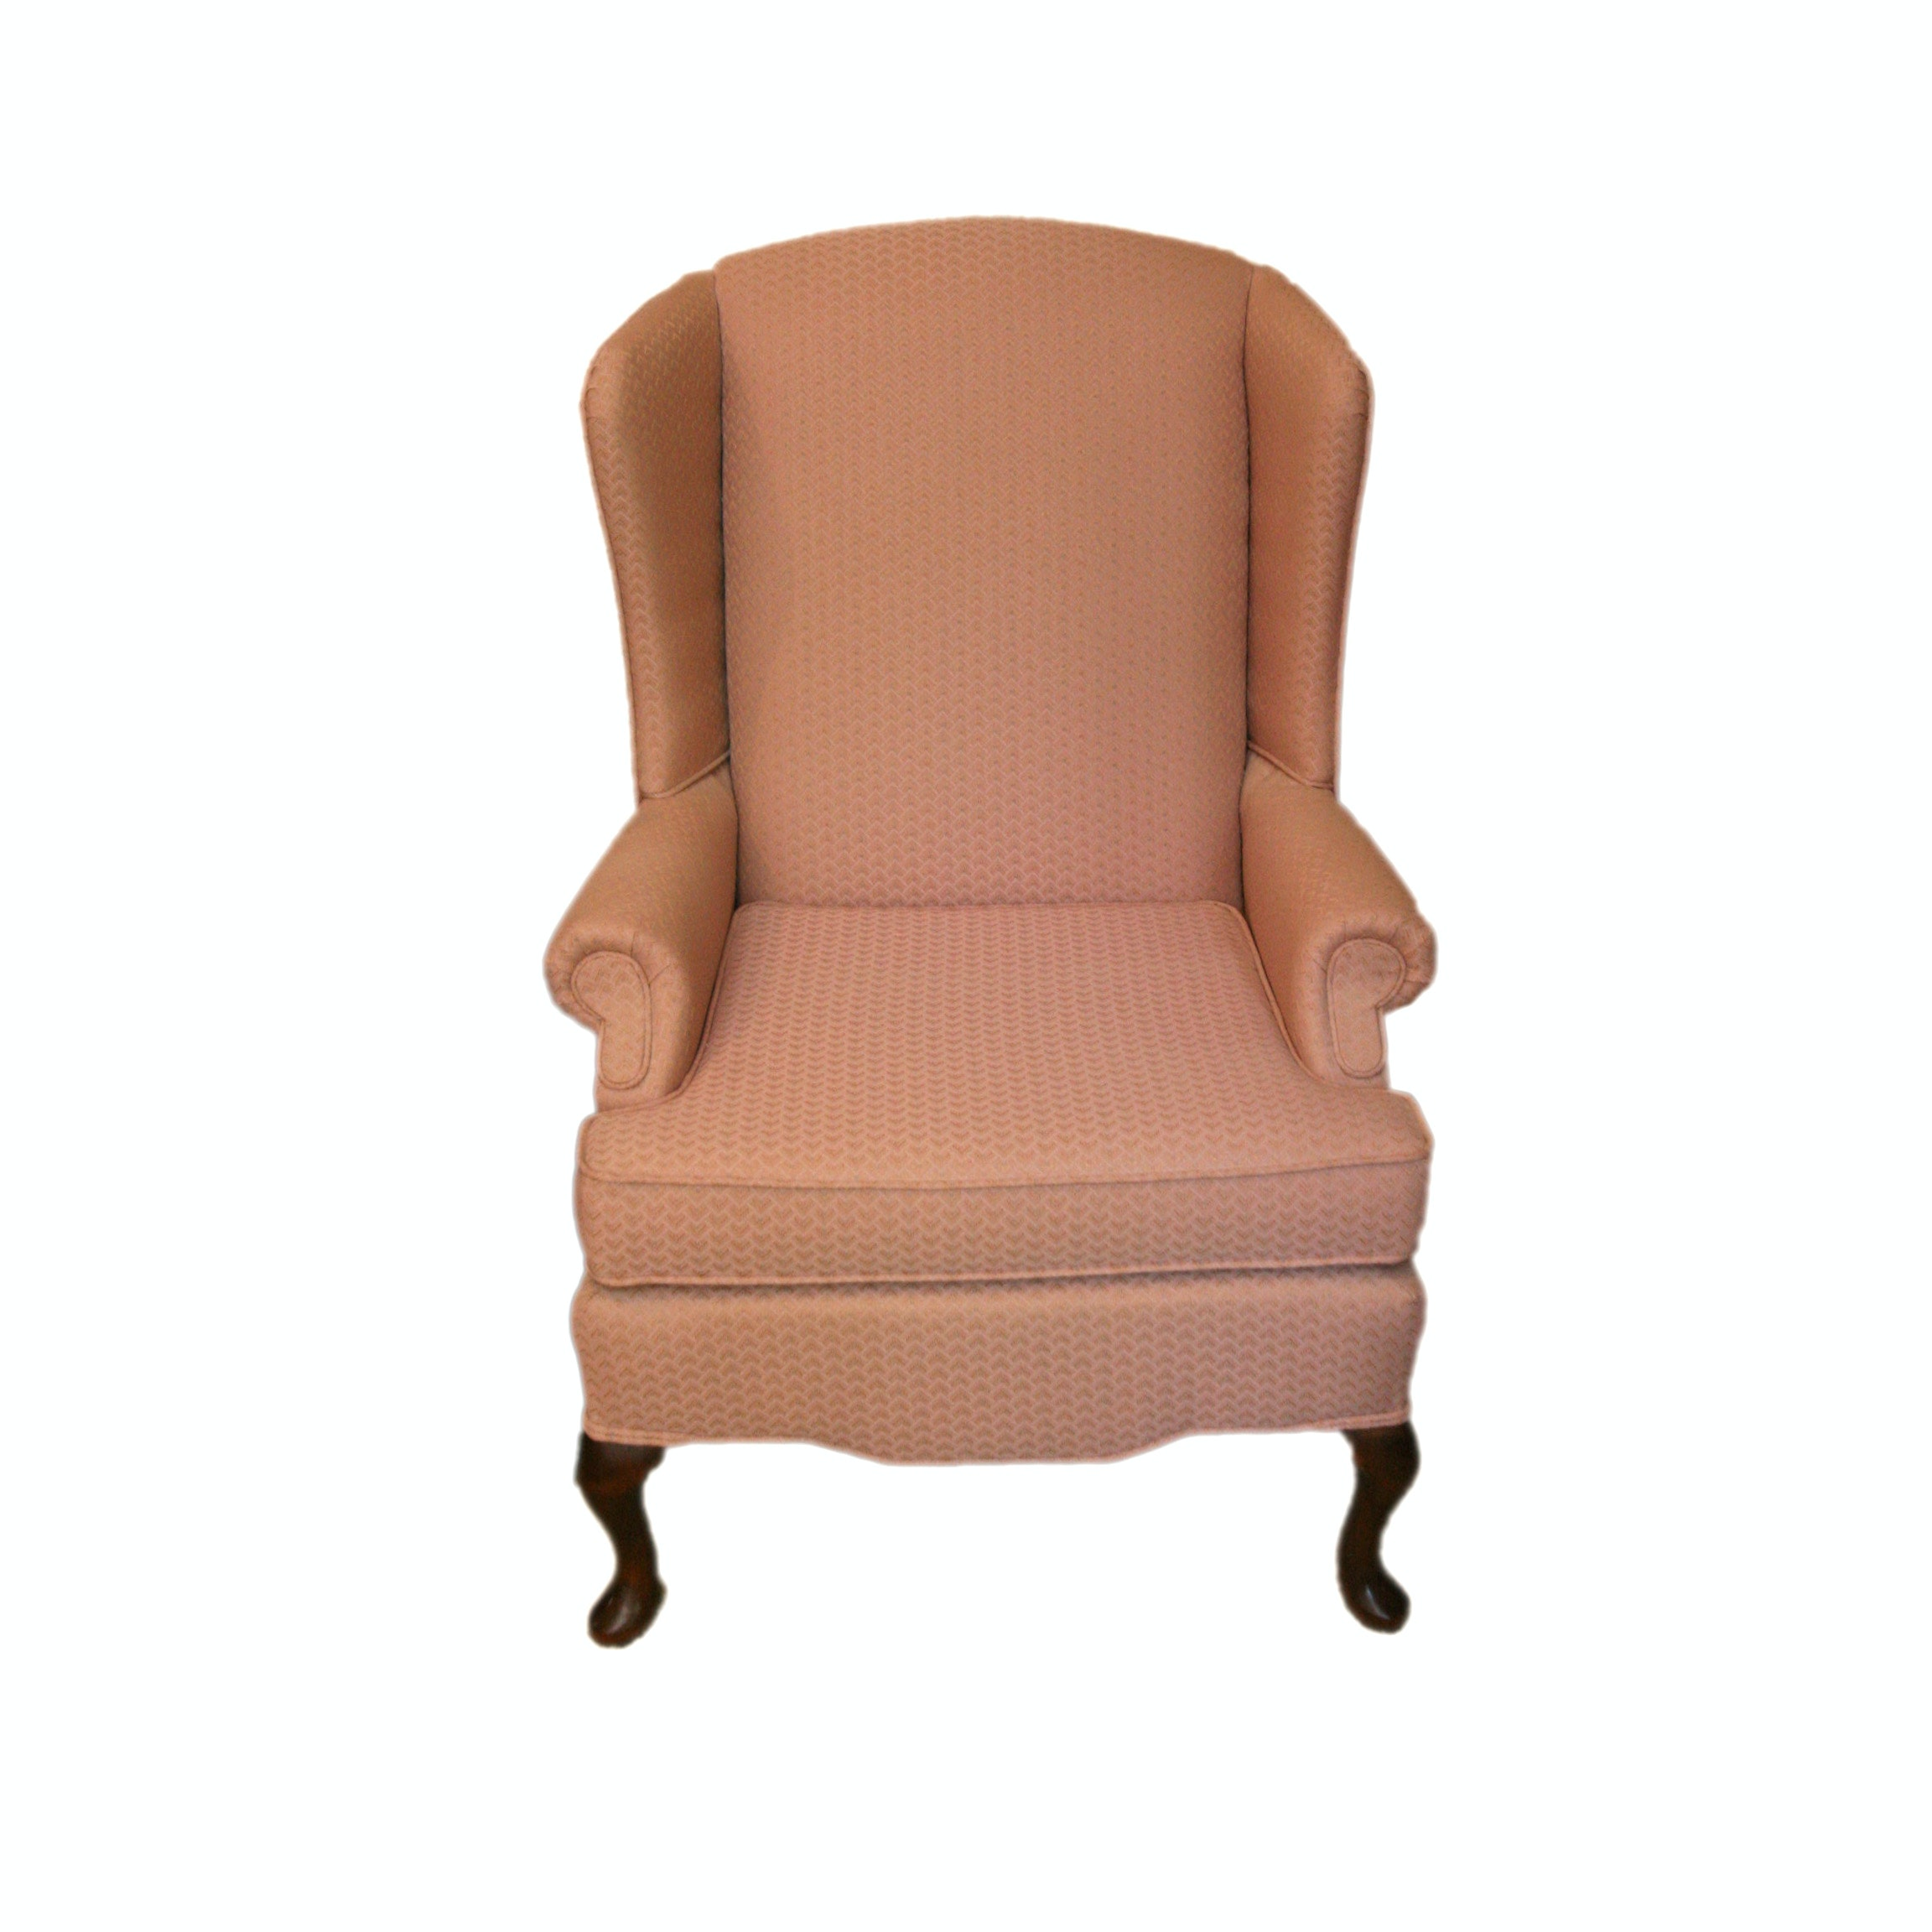 Charming Queen Anne Style Upholstered Wingback Chair By Best Chairs, Inc.